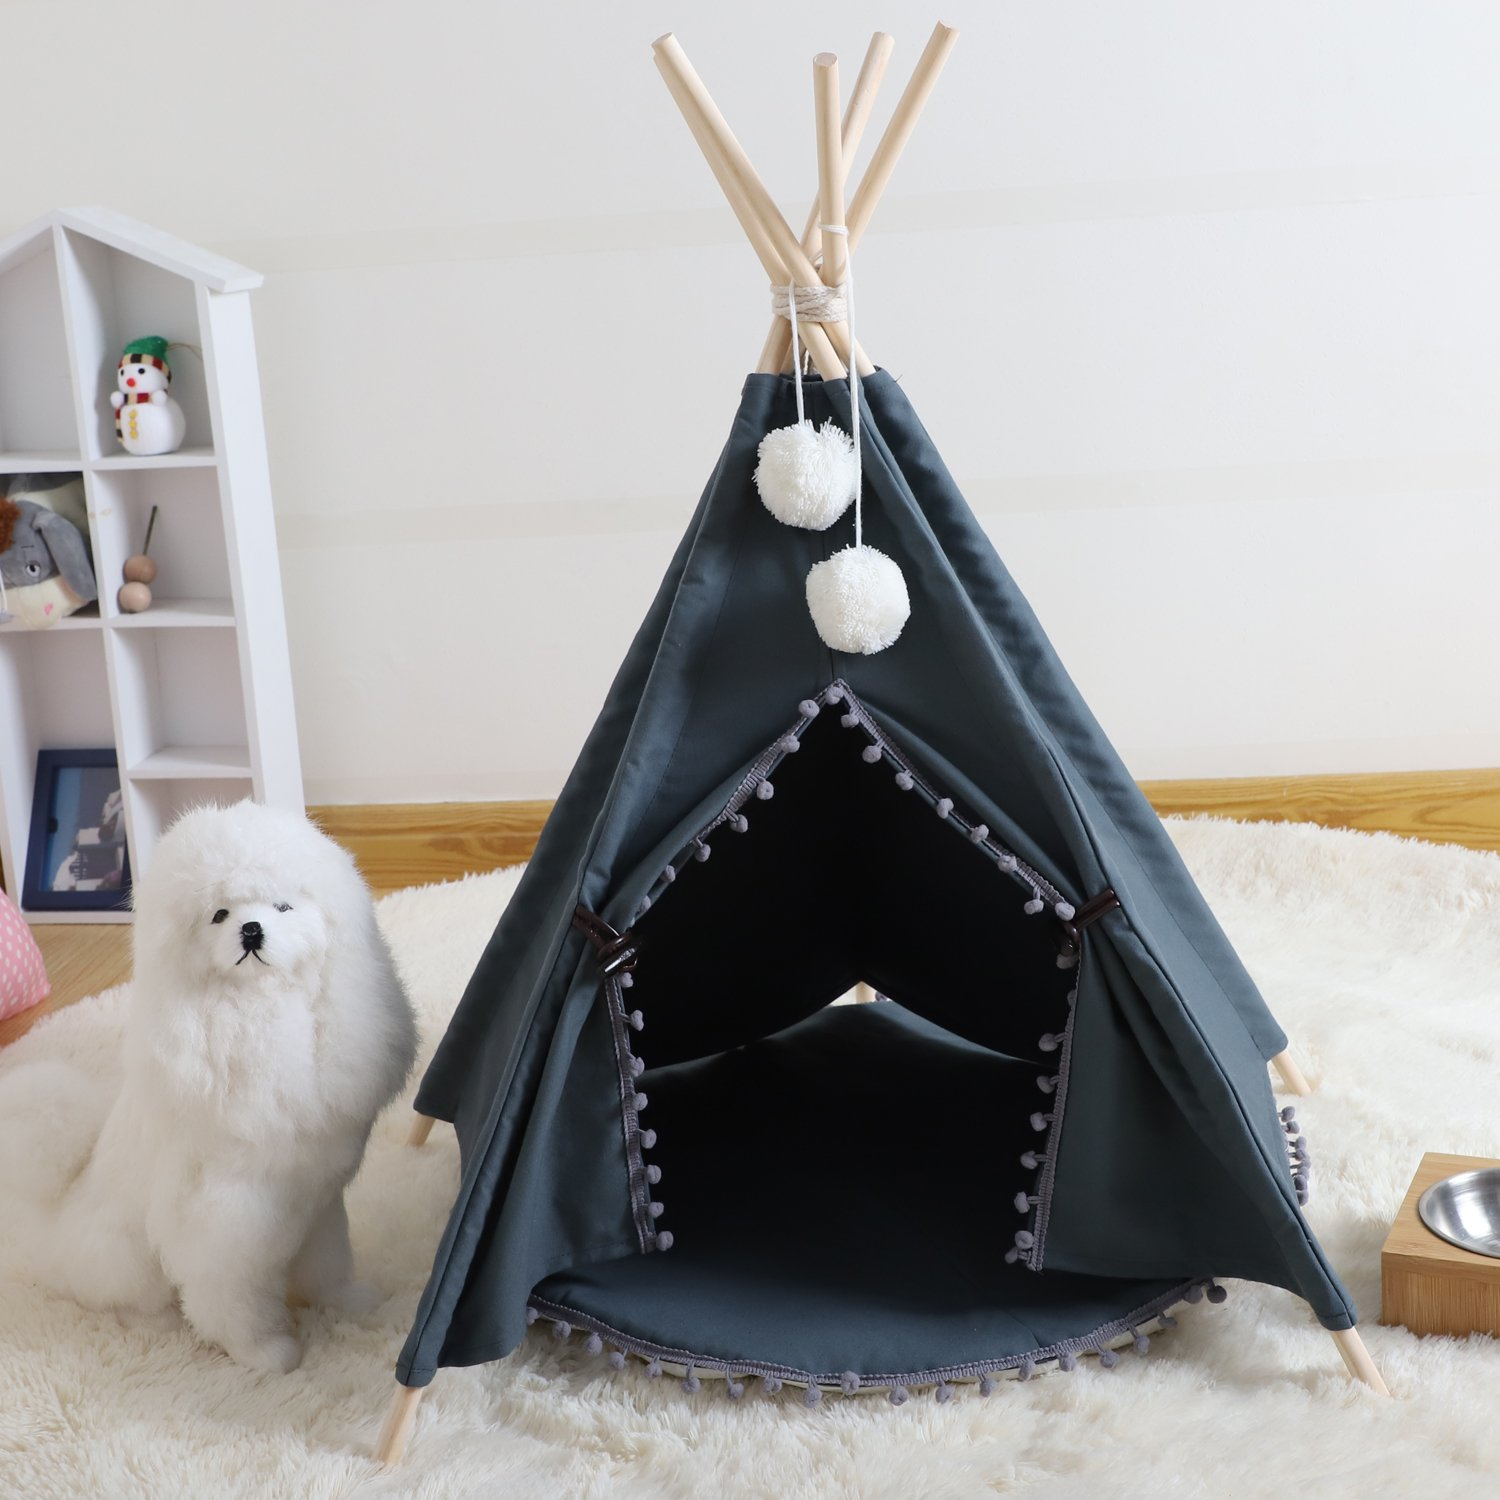 Wonder Space Pet Teepee House - 28 Inch 5-Pole Grey Canvas Tent with Pom Pom Opening, Comes with Cushion &Free Hangings & Name Blackboard, Elegant Cat Dog Puppy Snuggle Bed Furniture By